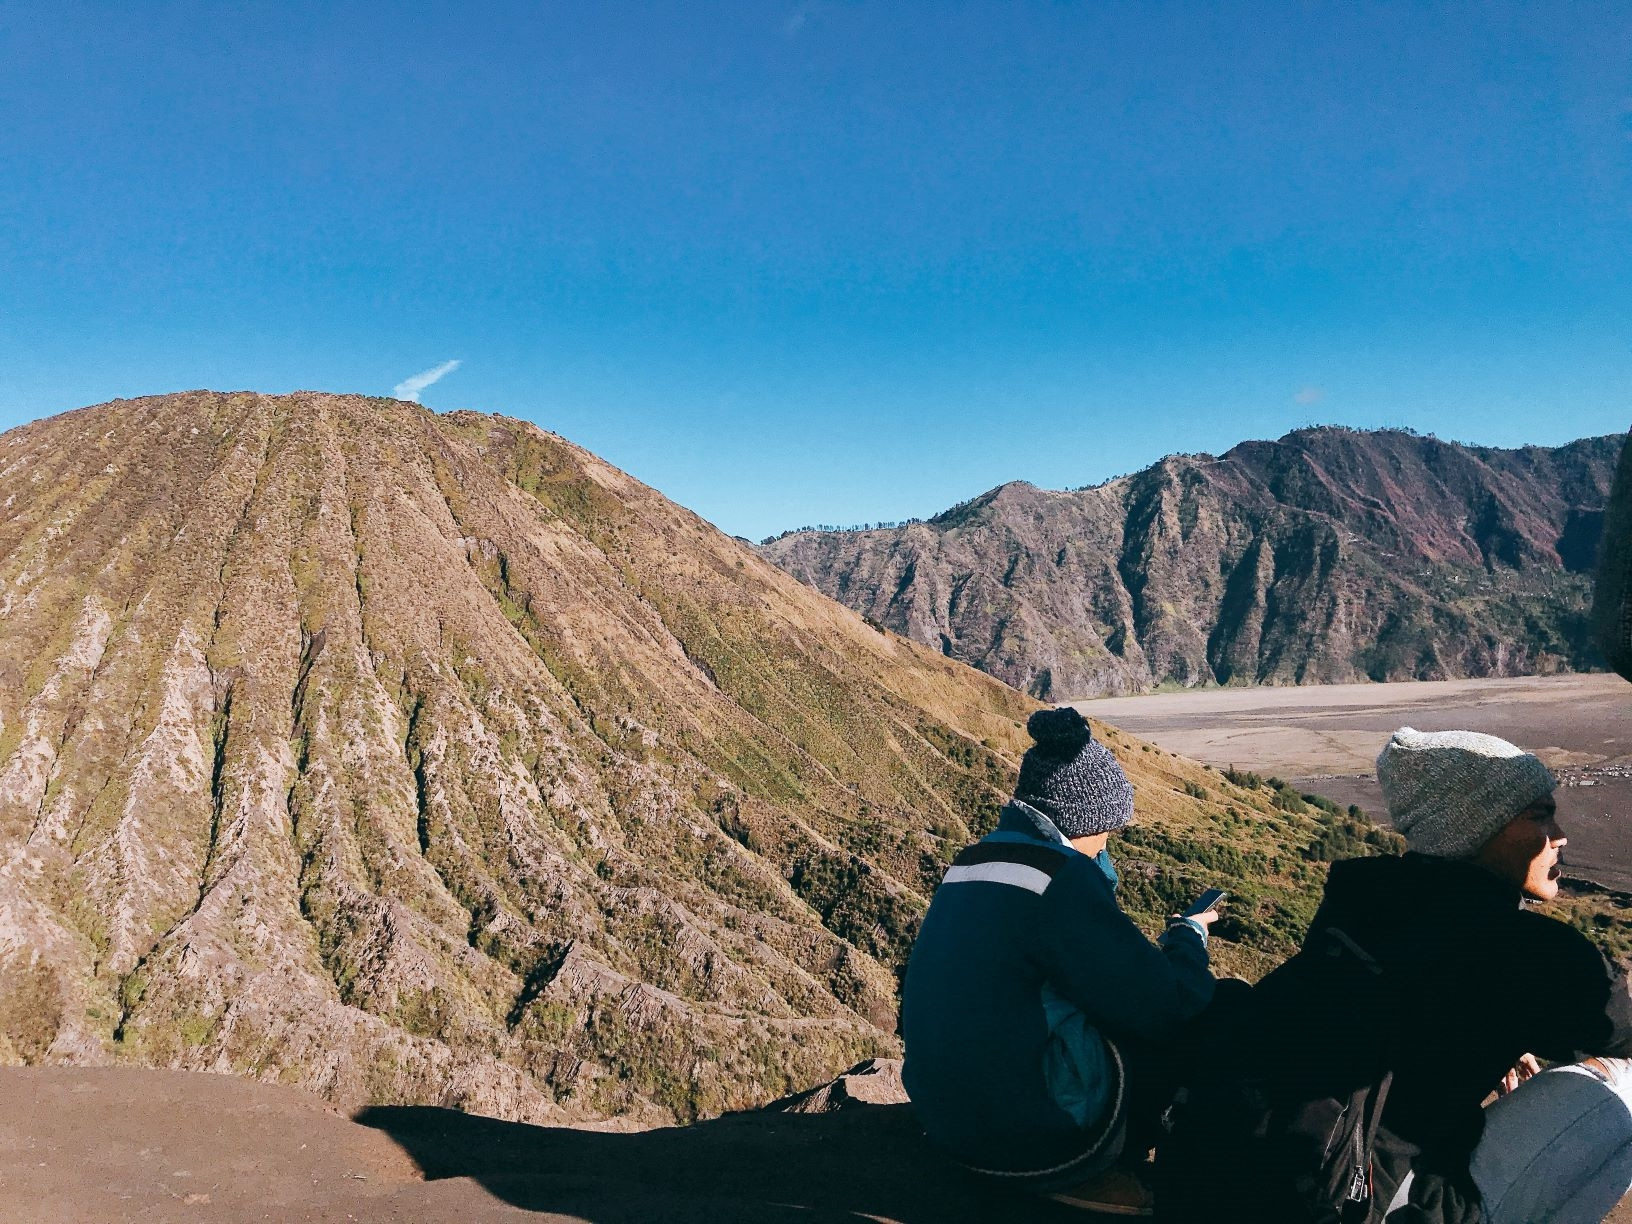 Den Indonesia, cham chan toi mieng nui lua Bromo hinh anh 56